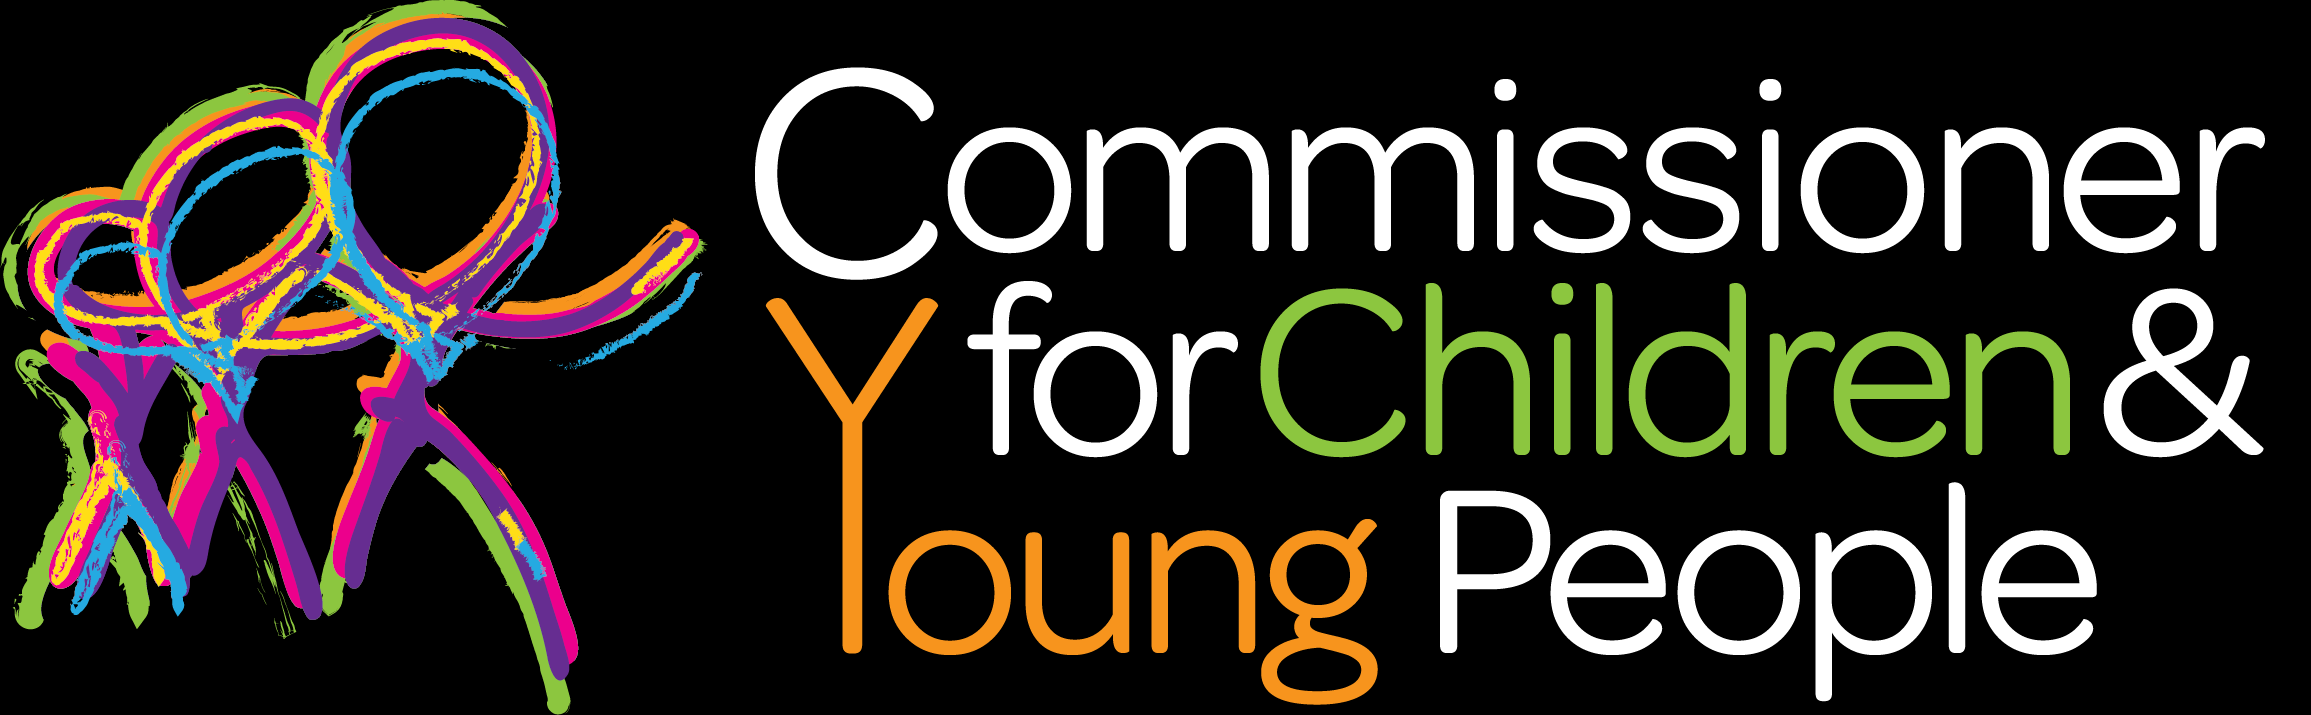 Testimonial - Office of the Commissioner for Children and Young People